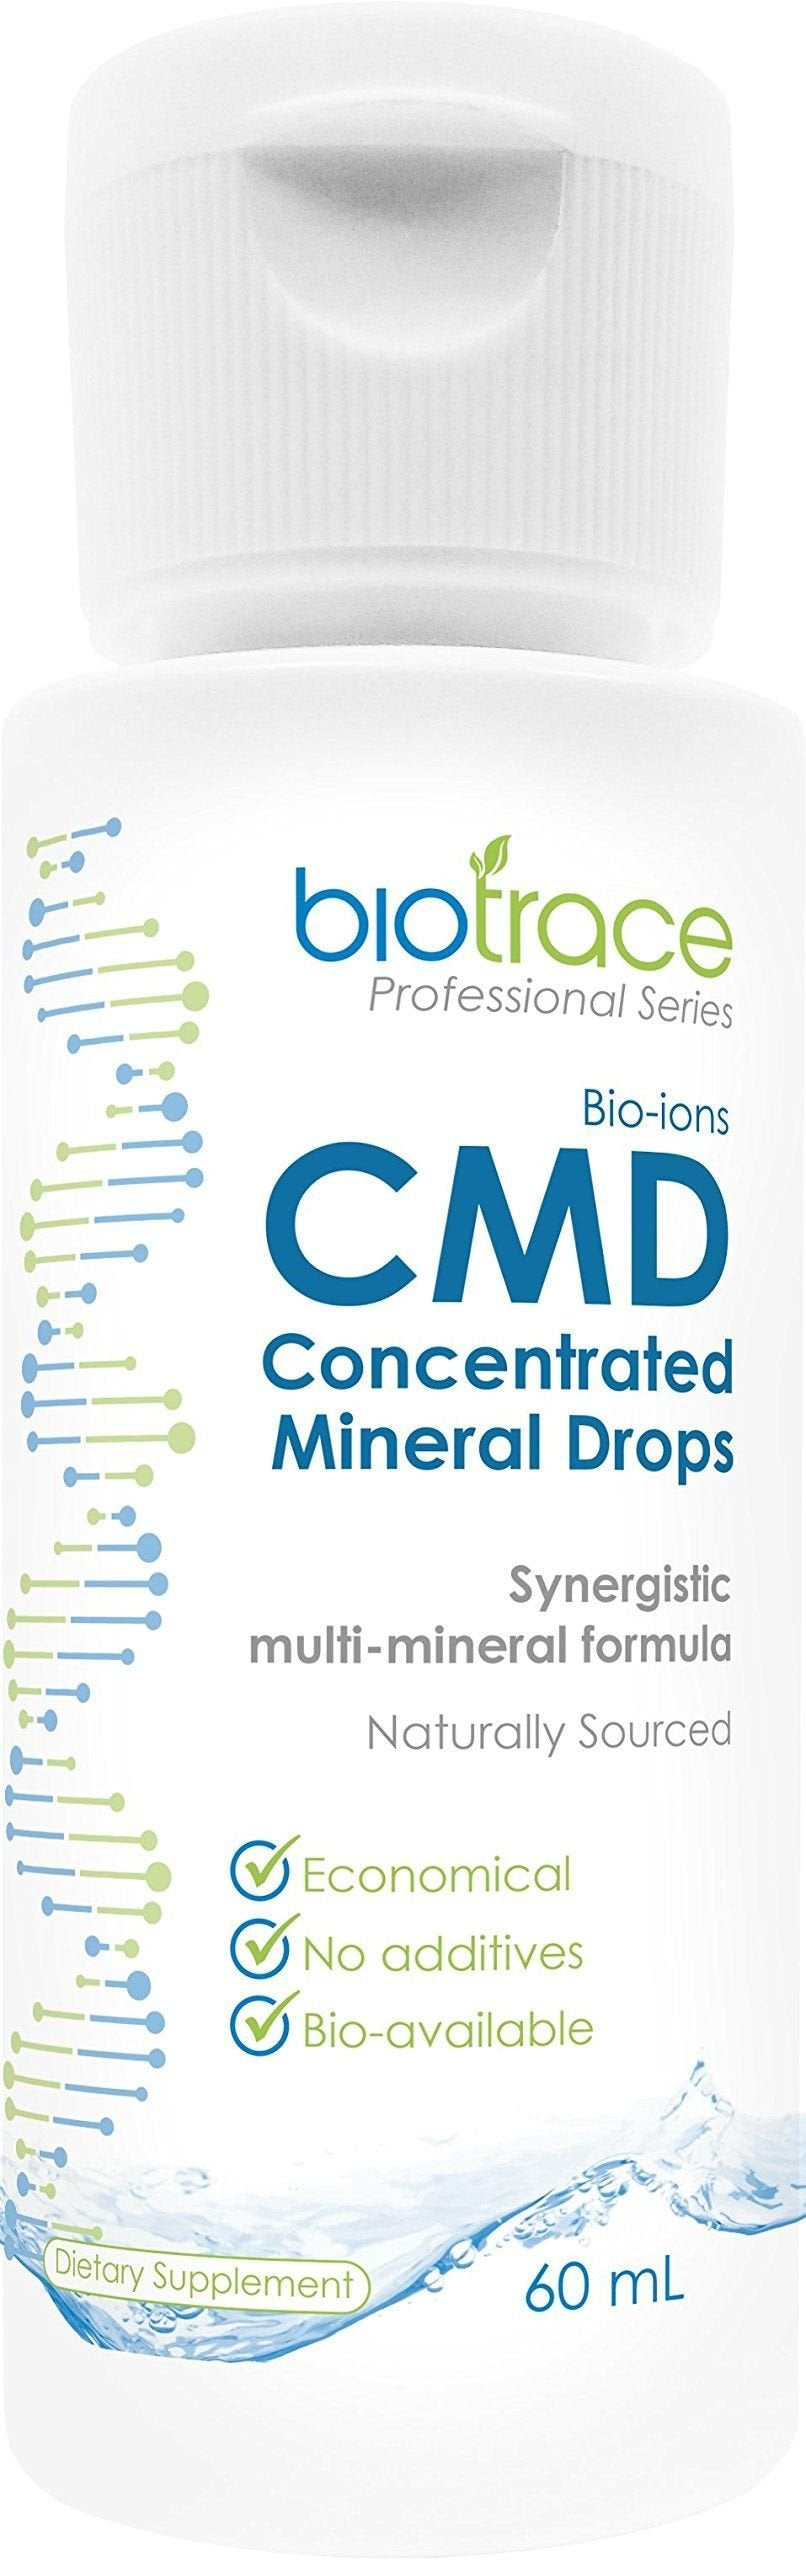 Trace Minerals Drops, BioTrace Concentrated Mineral Drops 2.03 Fl Oz– Highest Concentrated Sea Minerals- Liquid Ionic Mineral Supplements for Better Adsorption of Vitamins & Nutrients, Body pH Balance